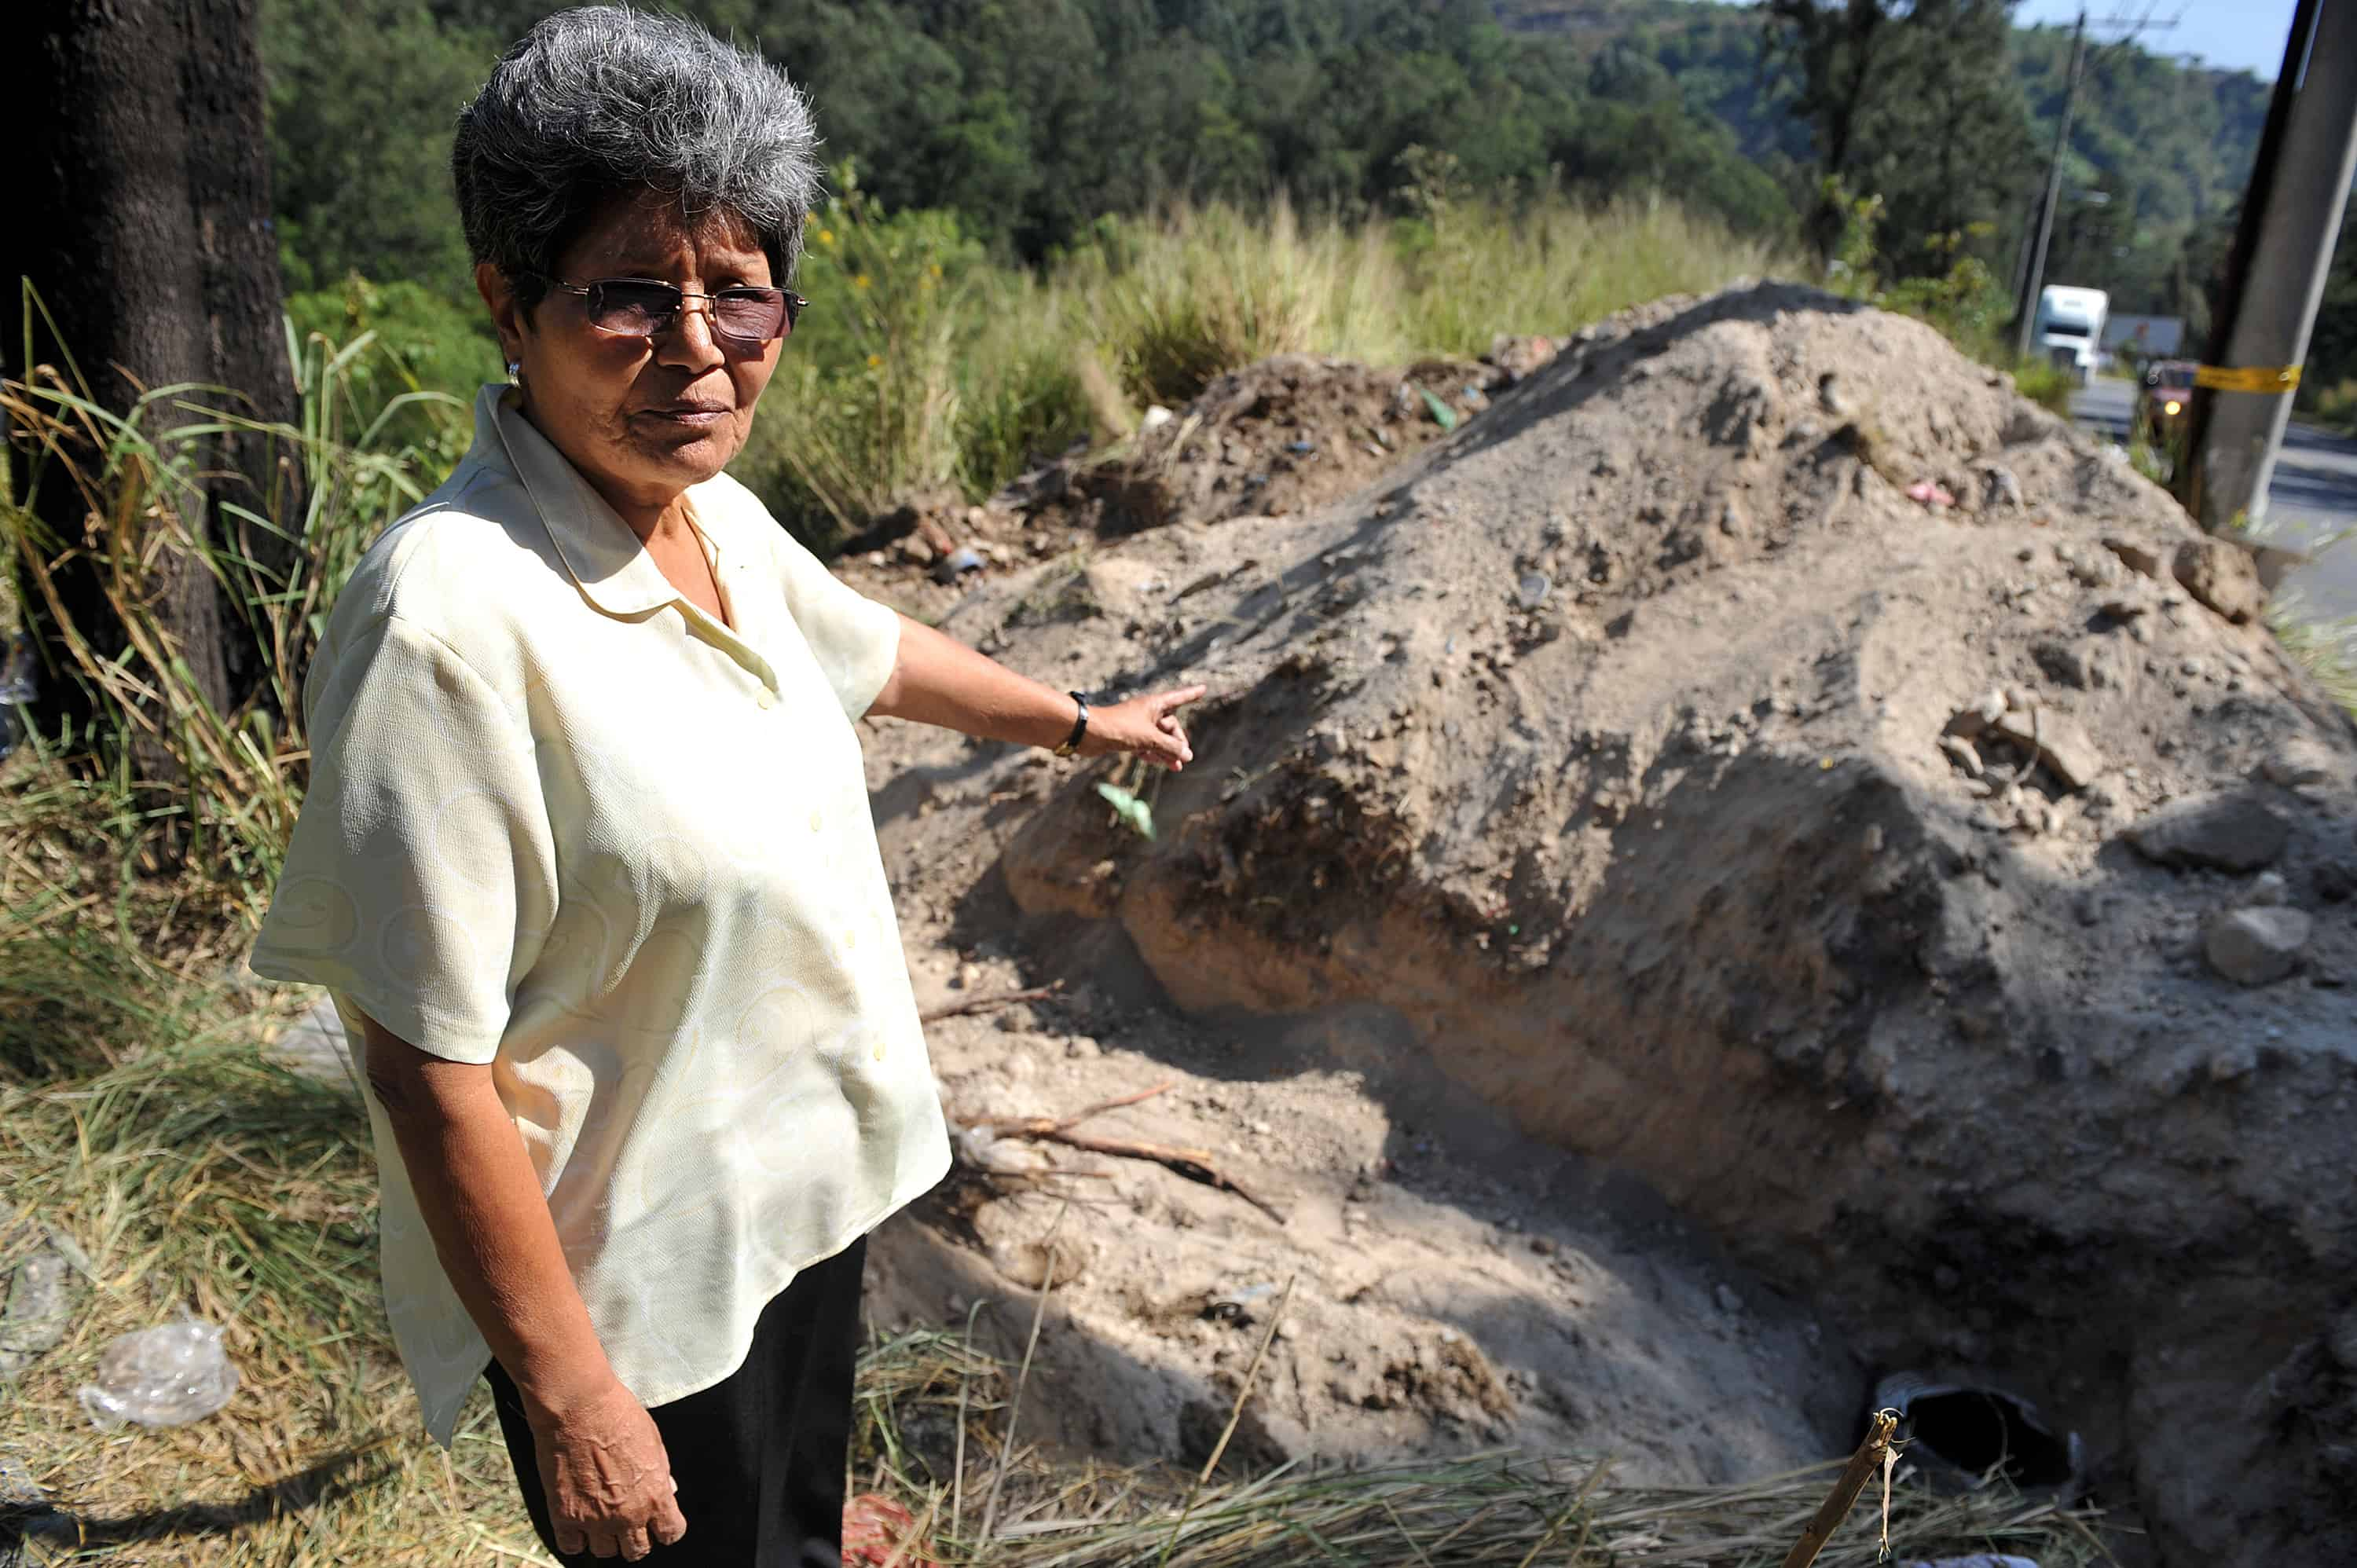 Aura Elena Farfán signals to the area to be dug up in hopes of finding the remains of her late-brother, Rubén Amílcar Farfán, who was captured and went missing on May 15, 1984 during the Guatemalan Civil War (1960-1996), in Villa Lobos, 12 kilometers south of Guatemala City. Photo taken December 11, 2009.